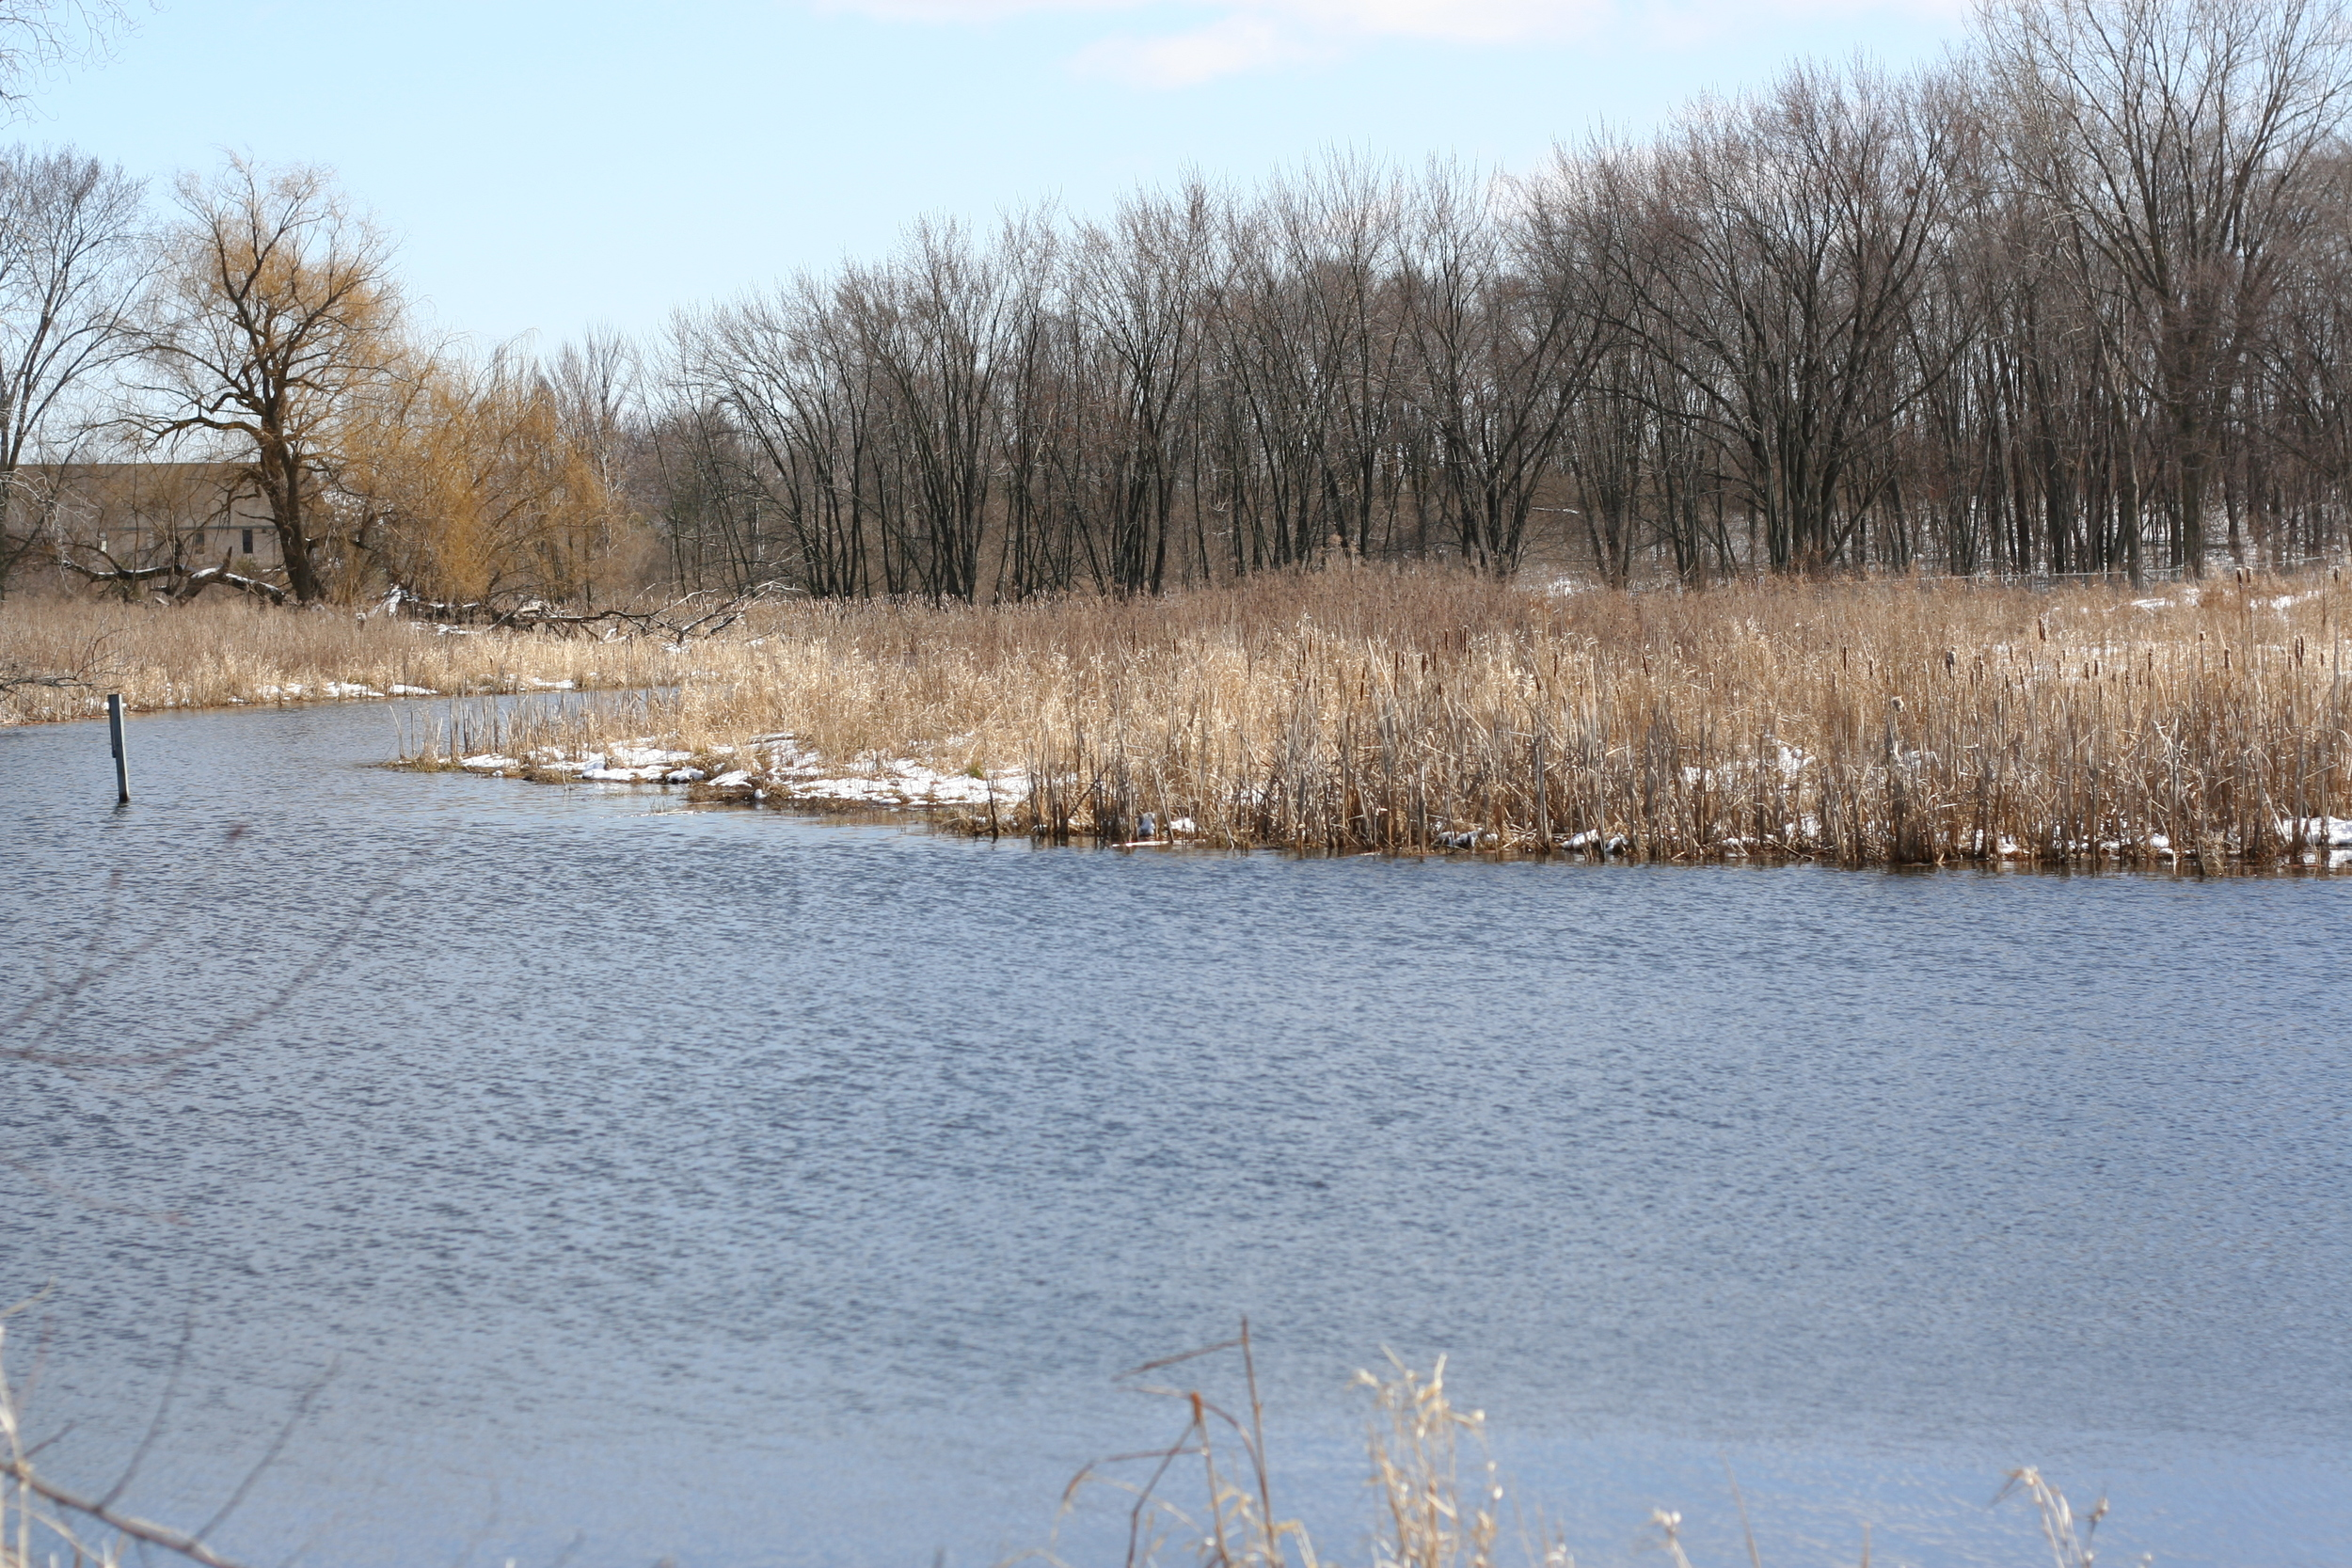 Aldo Leopold Nature Center in Monona, WI